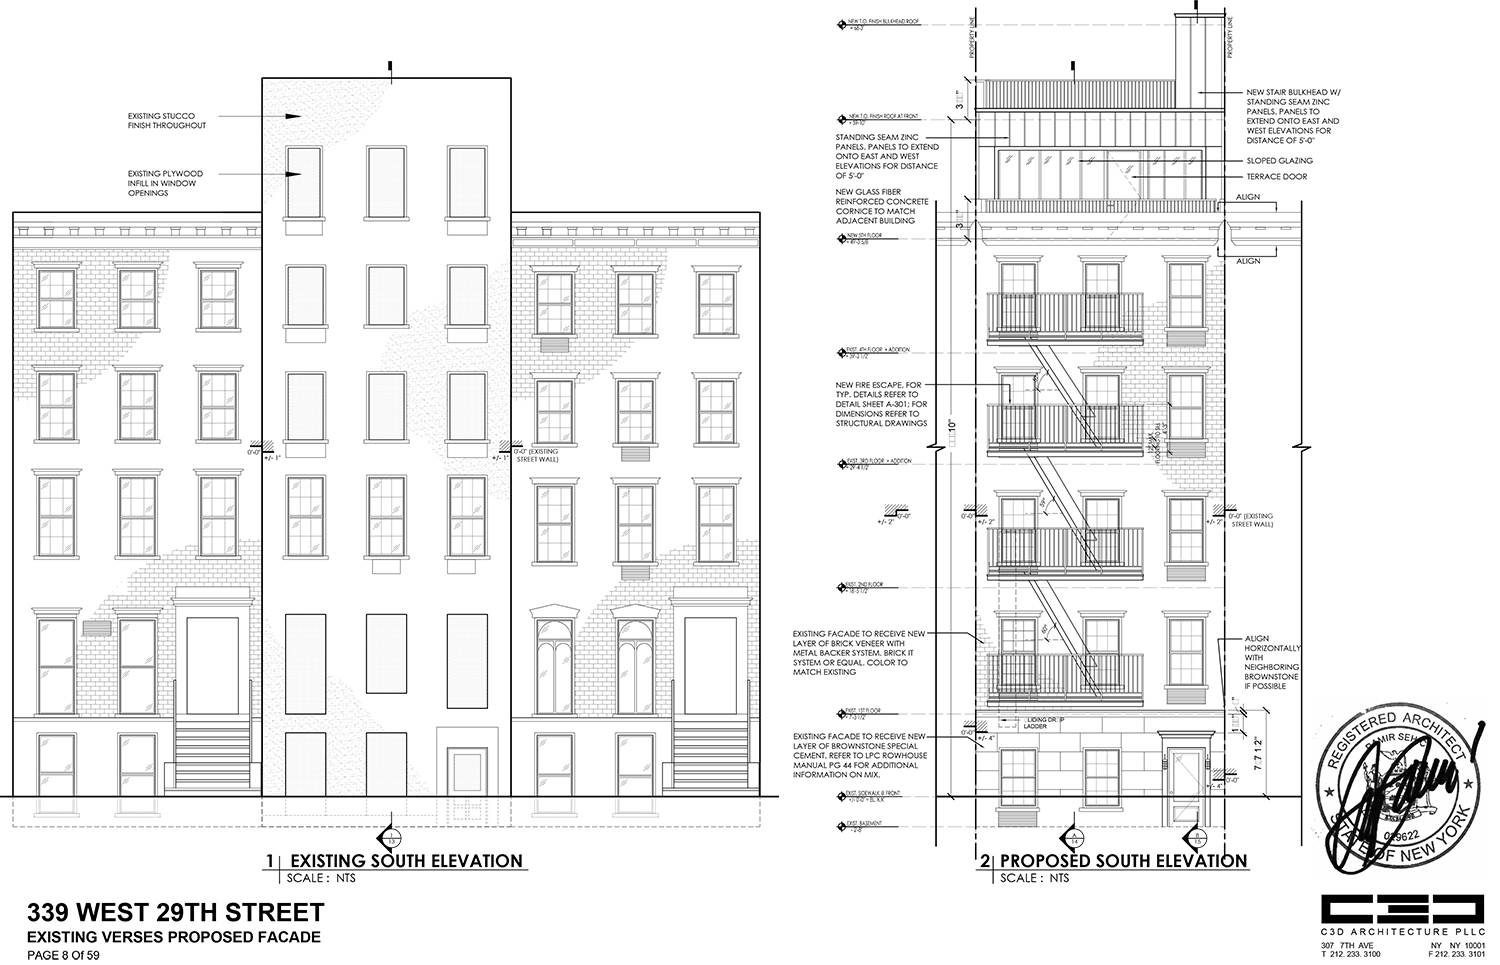 landmarks leans towards removal of extra floor from hopper gibbons 339west29thstreet 20160920 06 339west29thstreet 20160920 07 339west29thstreet 20160920 08 339west29thstreet 20160920 09 339west29thstreet 20160920 10